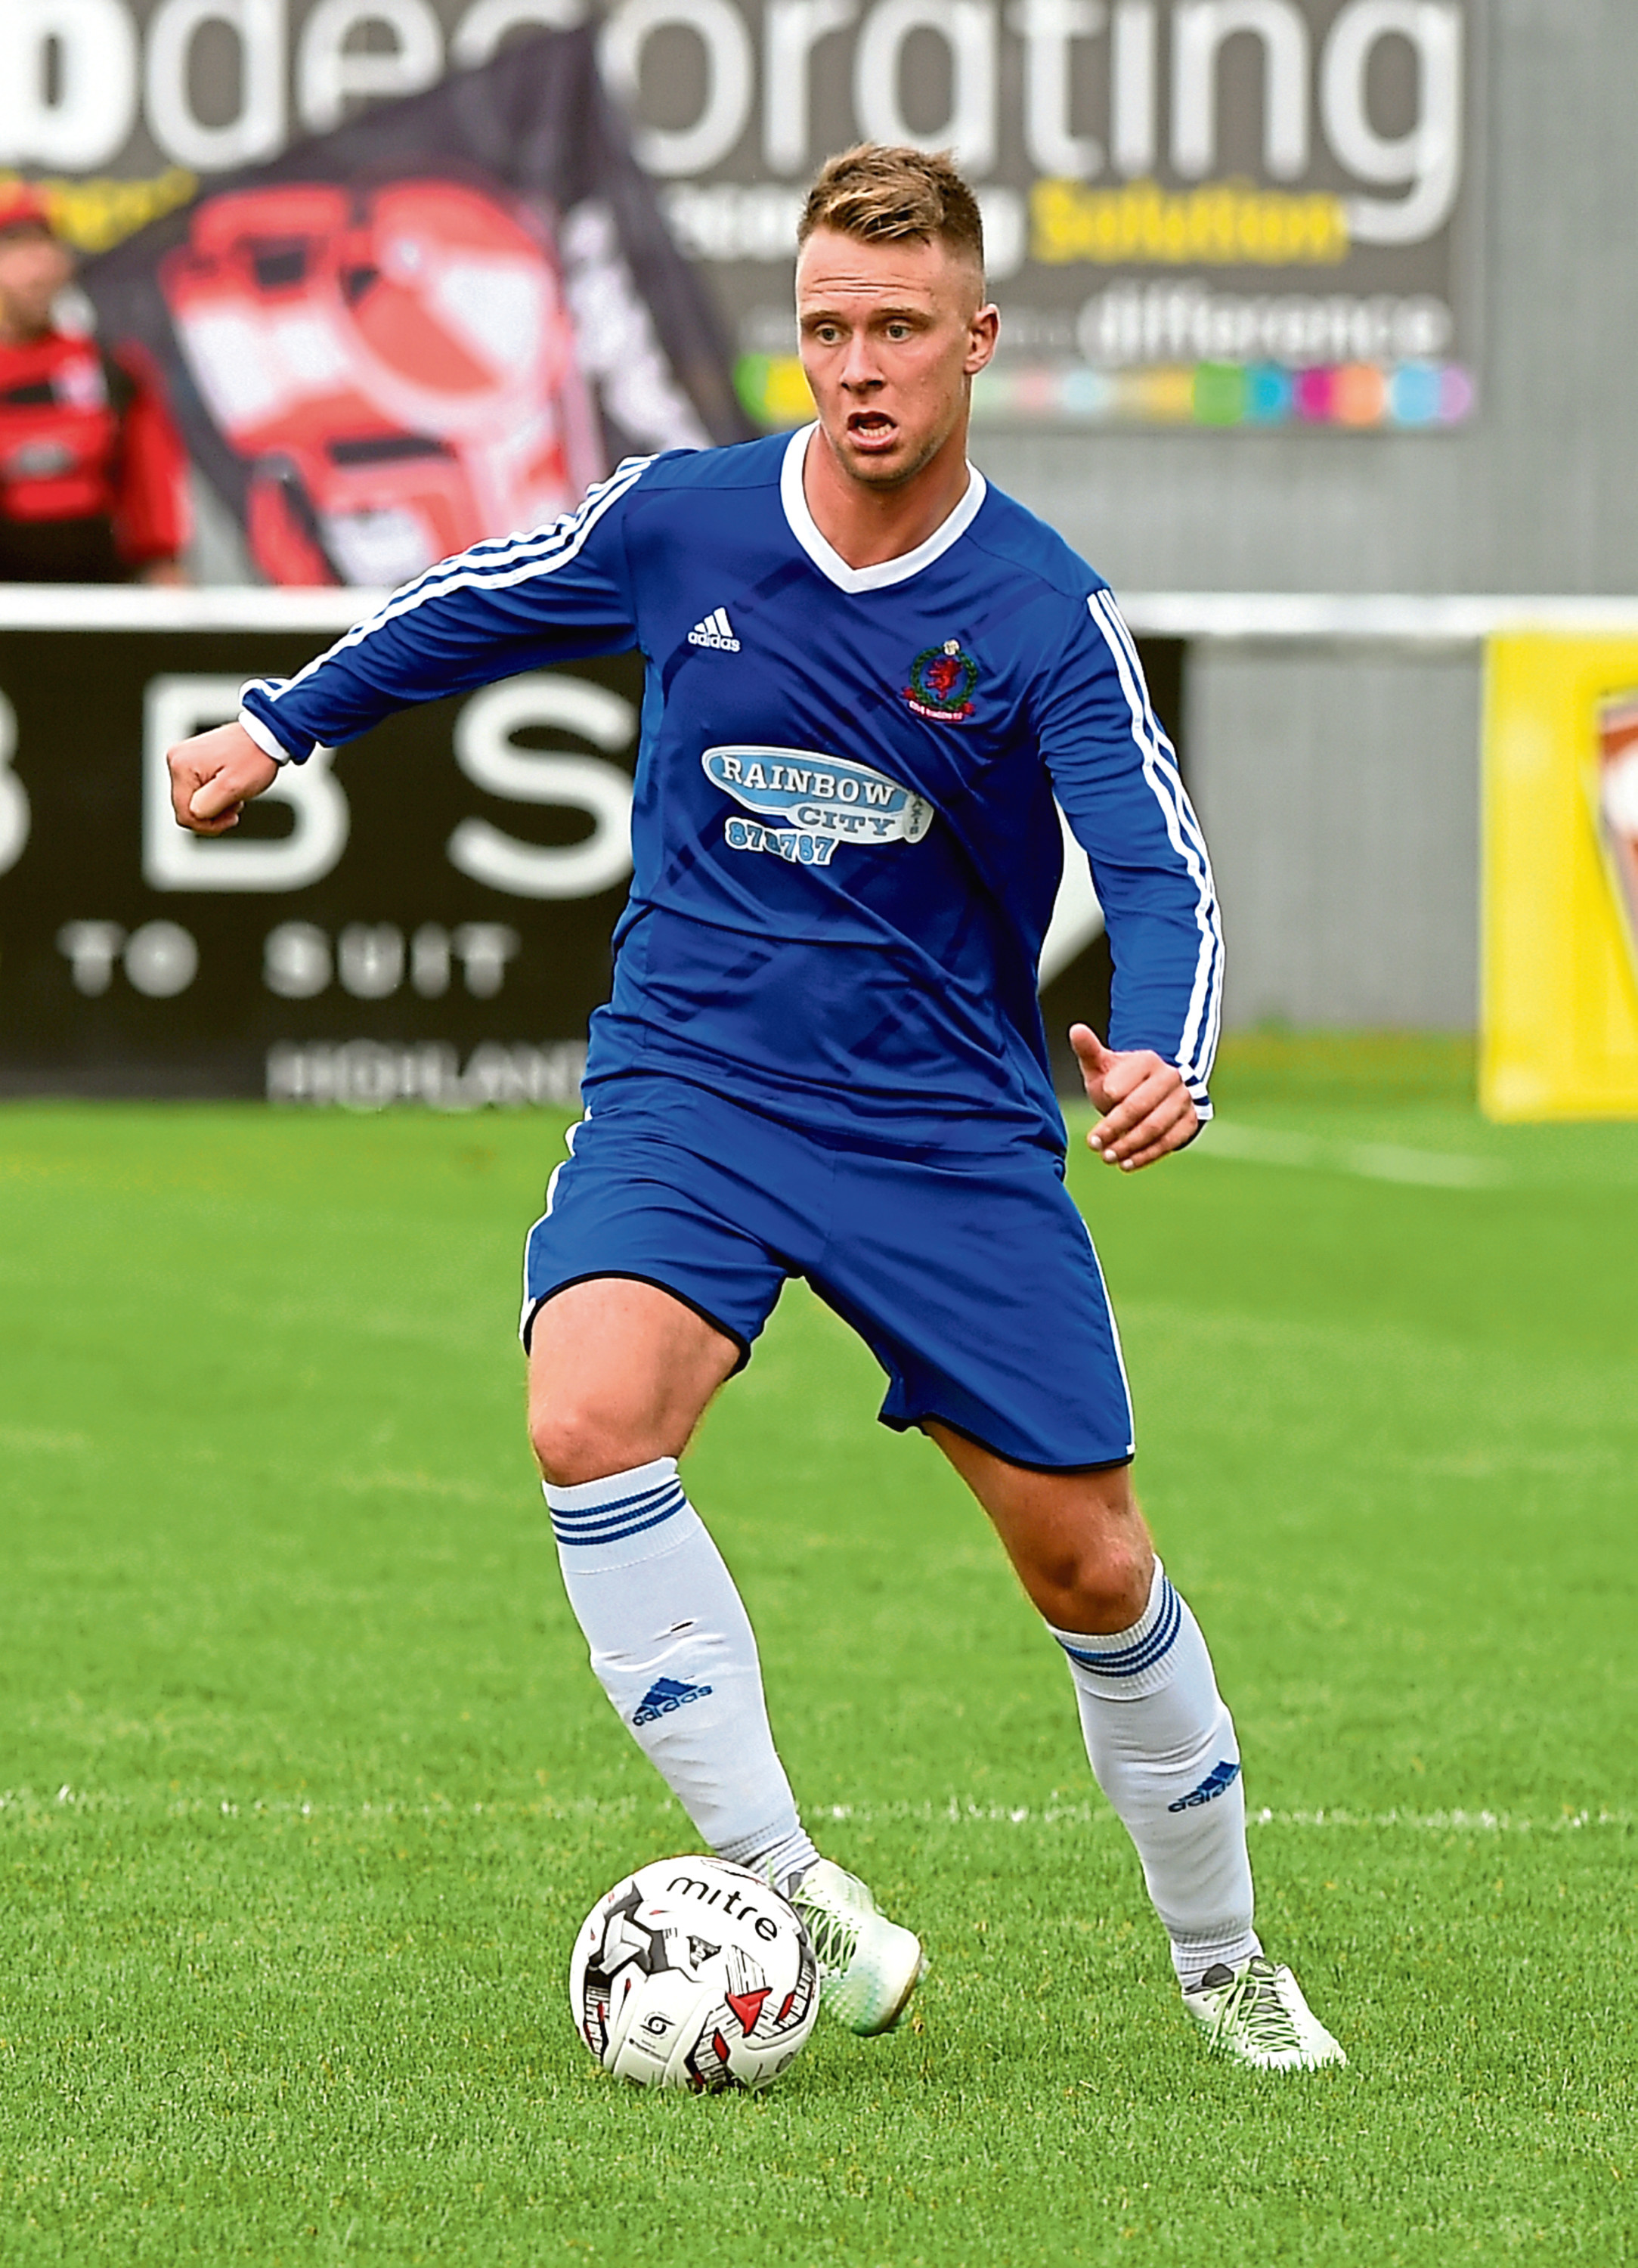 Cove's Ryan Strachan. Picture by KENNY ELRICK